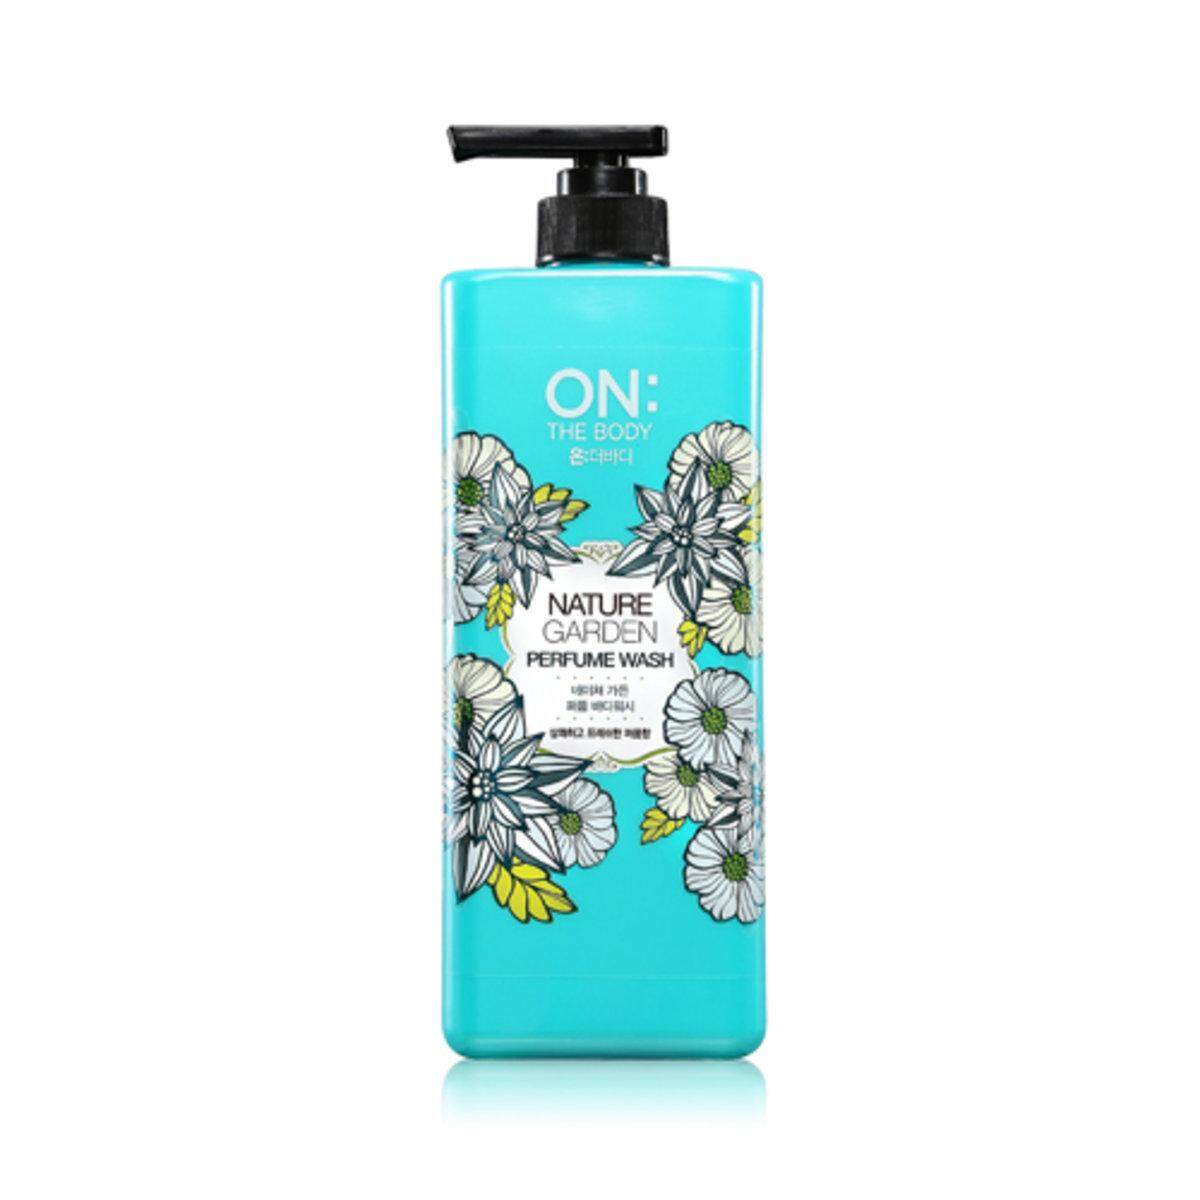 Body Soaps Shower Gels Buy At Best Citra Hand Lotion Youthful White 250 Ml On The Nature Garden Wash Blue 500ml X1